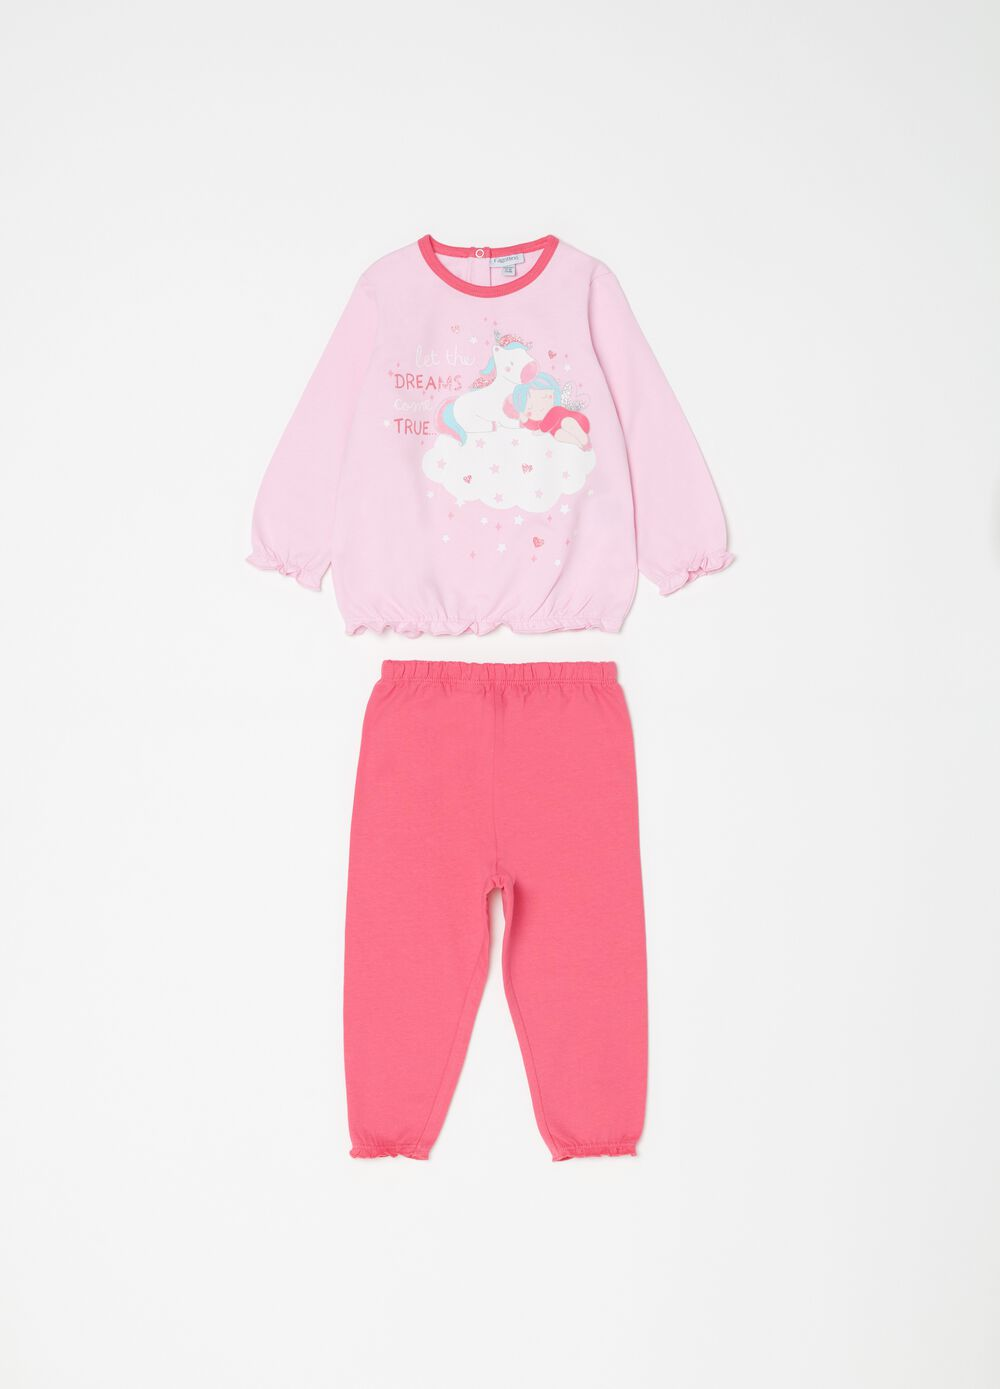 Pyjama top and trousers with unicorn print